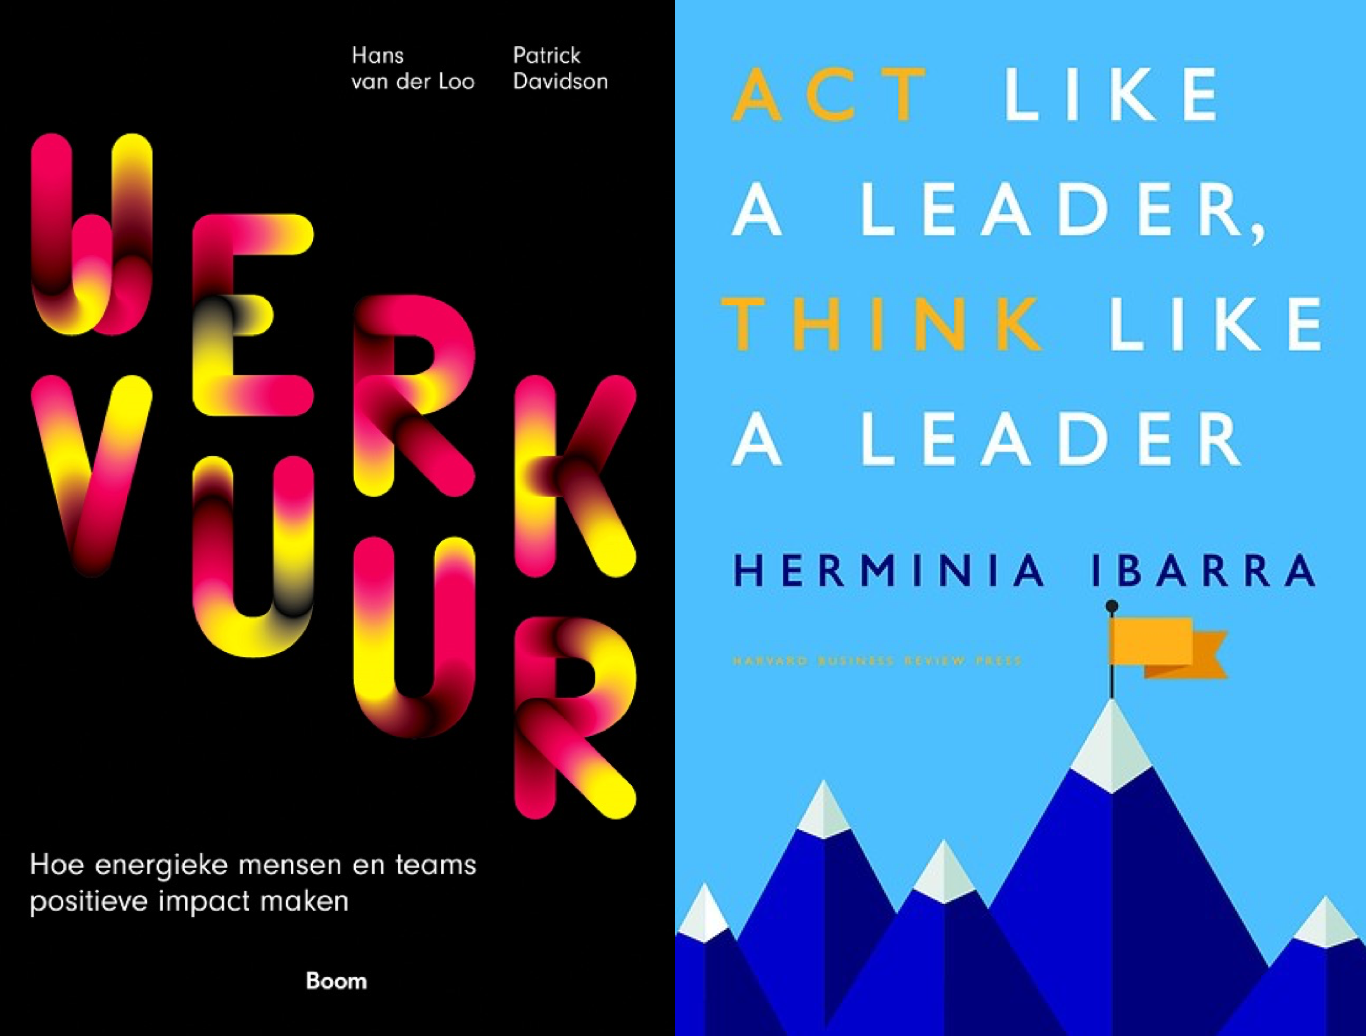 Act like a leader, think like a leader | Herminia Ibarra